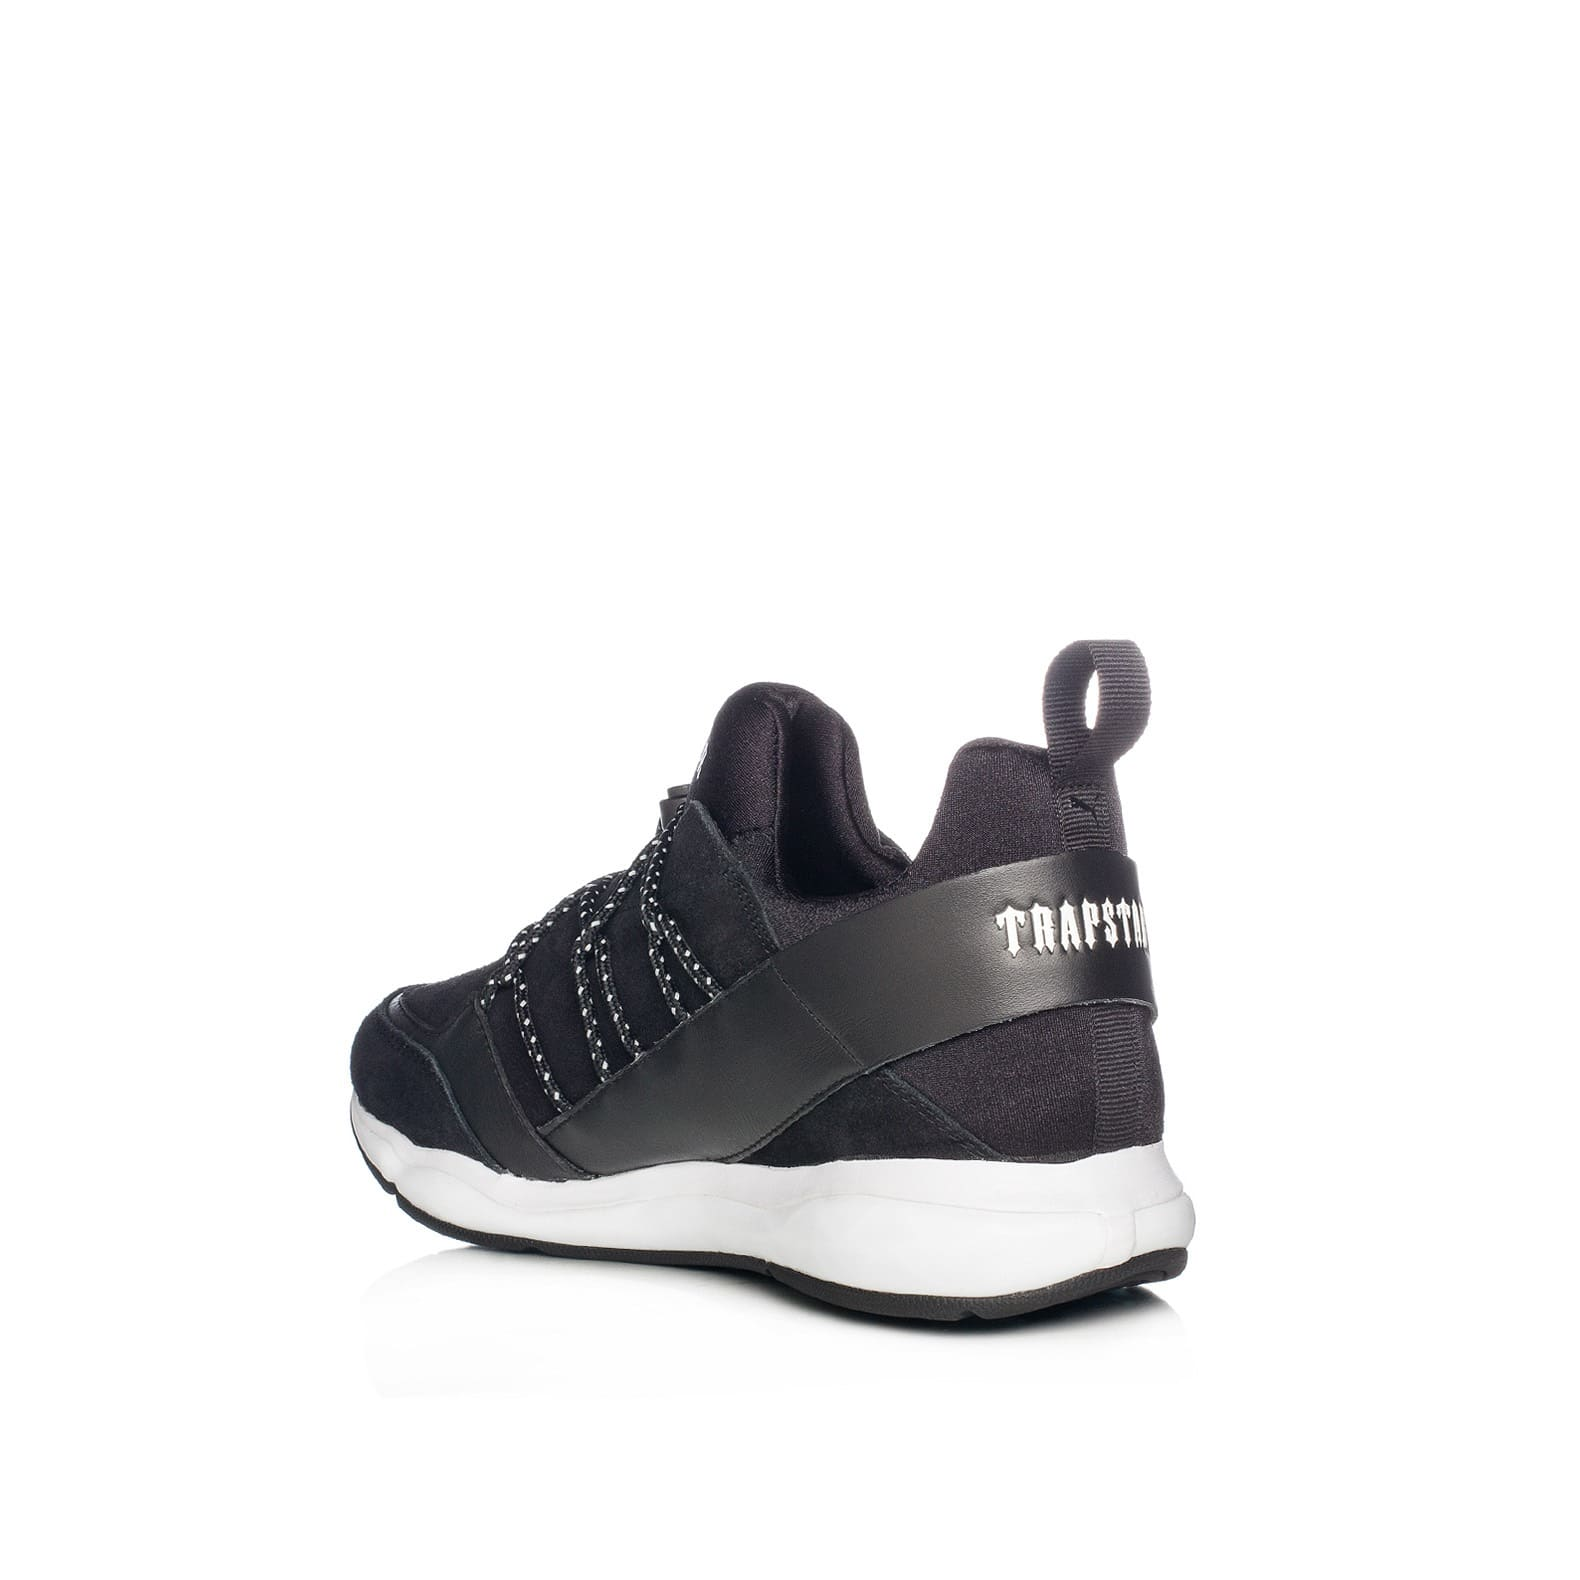 puma-cell-bubble-x-trapstar-black-white-361501-01